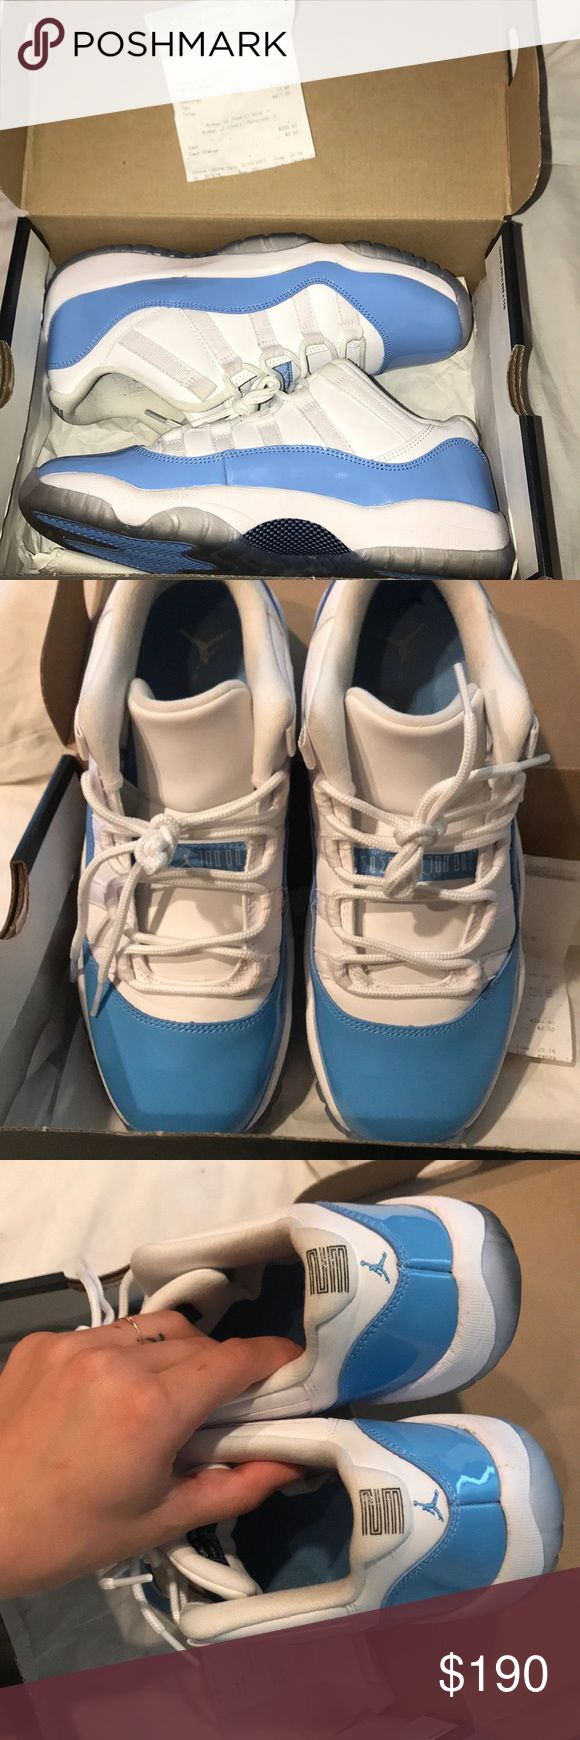 Air Jordan 11 Retro Low White and University Blue Great condition Only worn once  Still have receipt and original box Air Jordan Shoes Sneakers